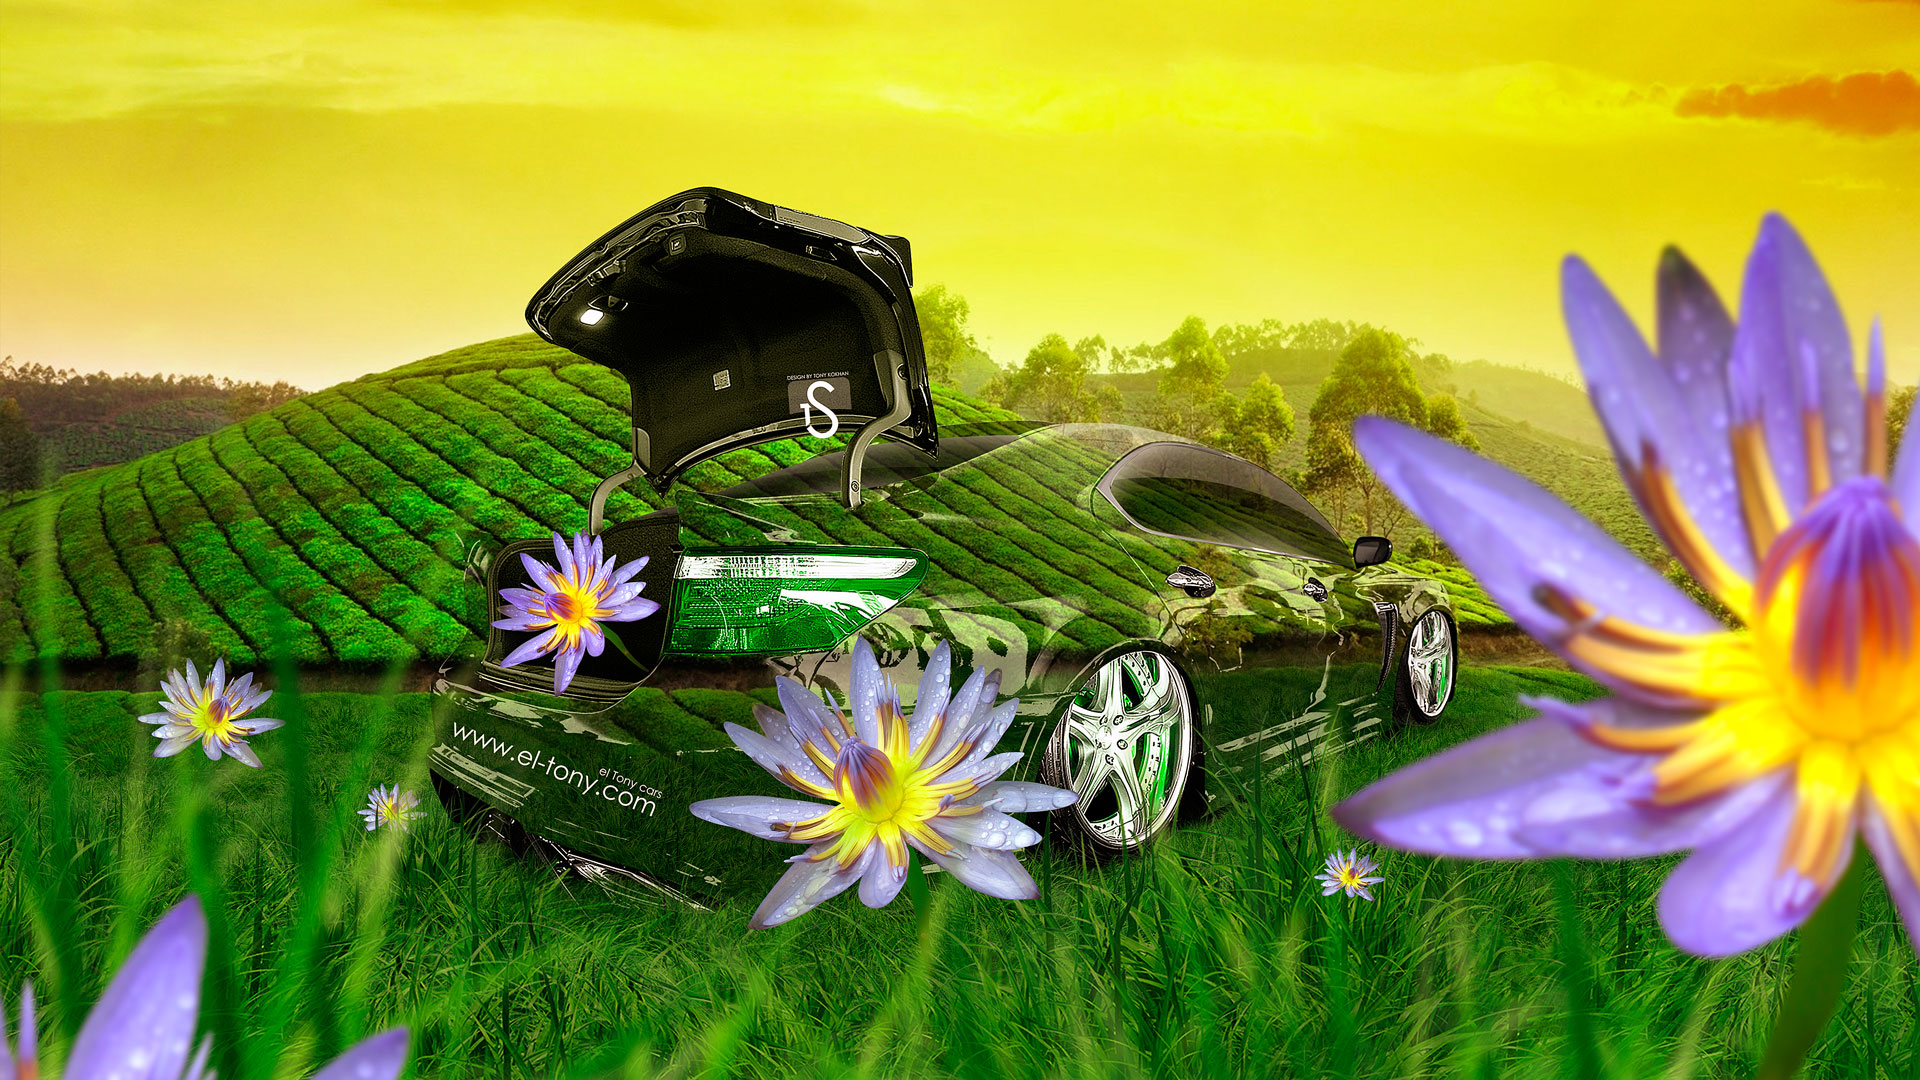 Lexus-LS460-Crystal-Nature-Flowers-Car-2014-design-by-Tony-Kokhan-[www.el-tony.com]